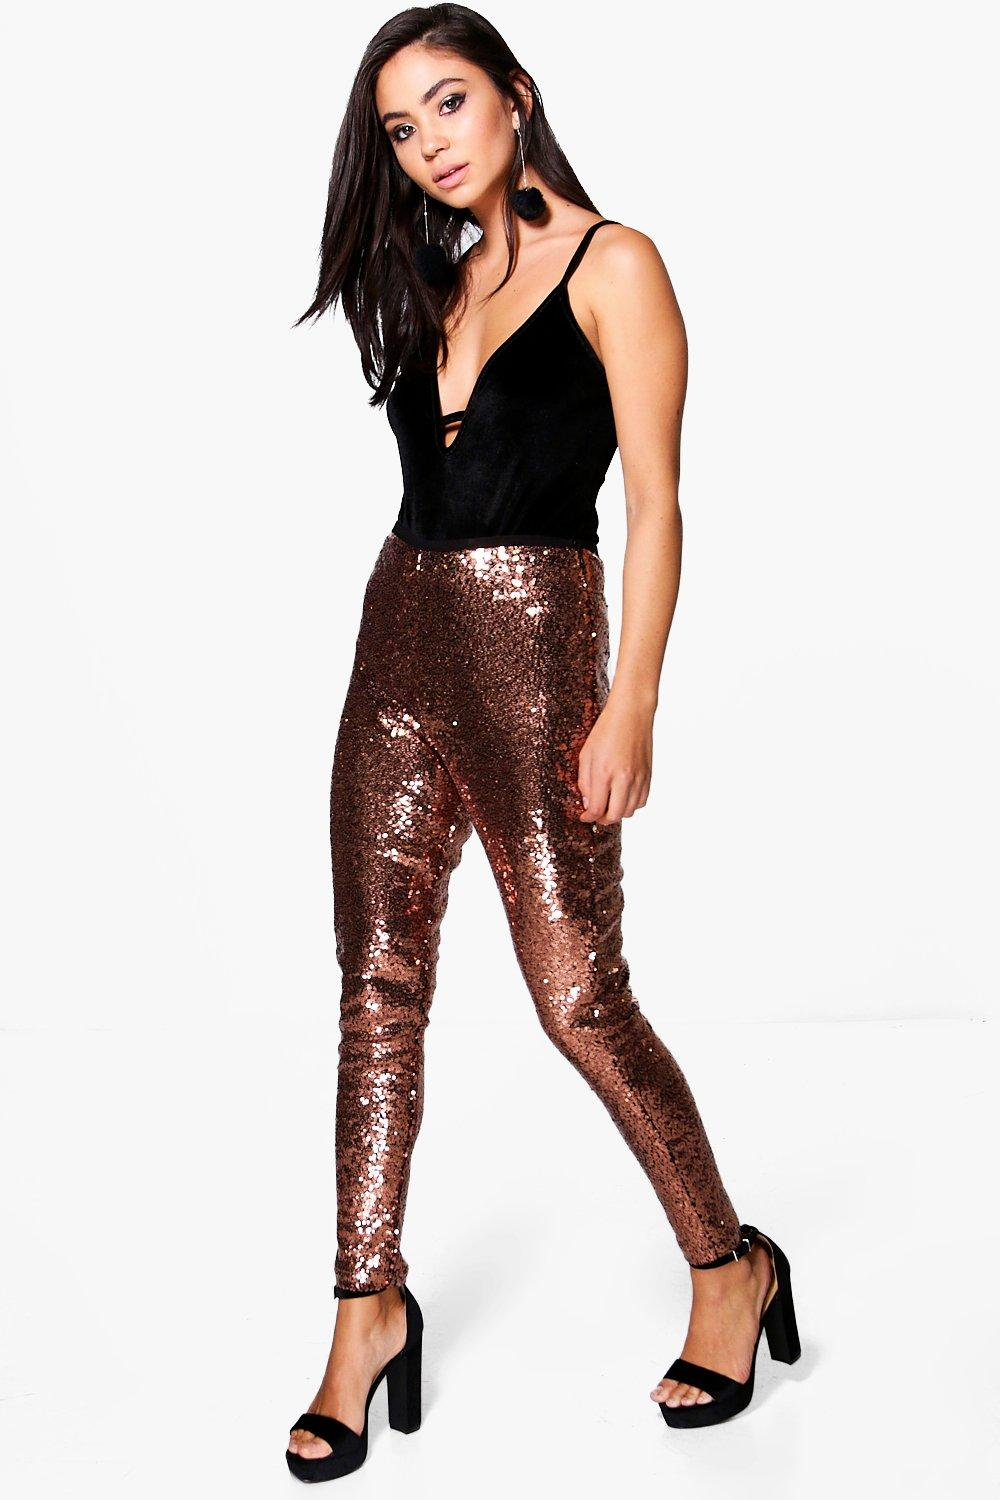 Loreli Super Skinny All Over Sequin Leggings